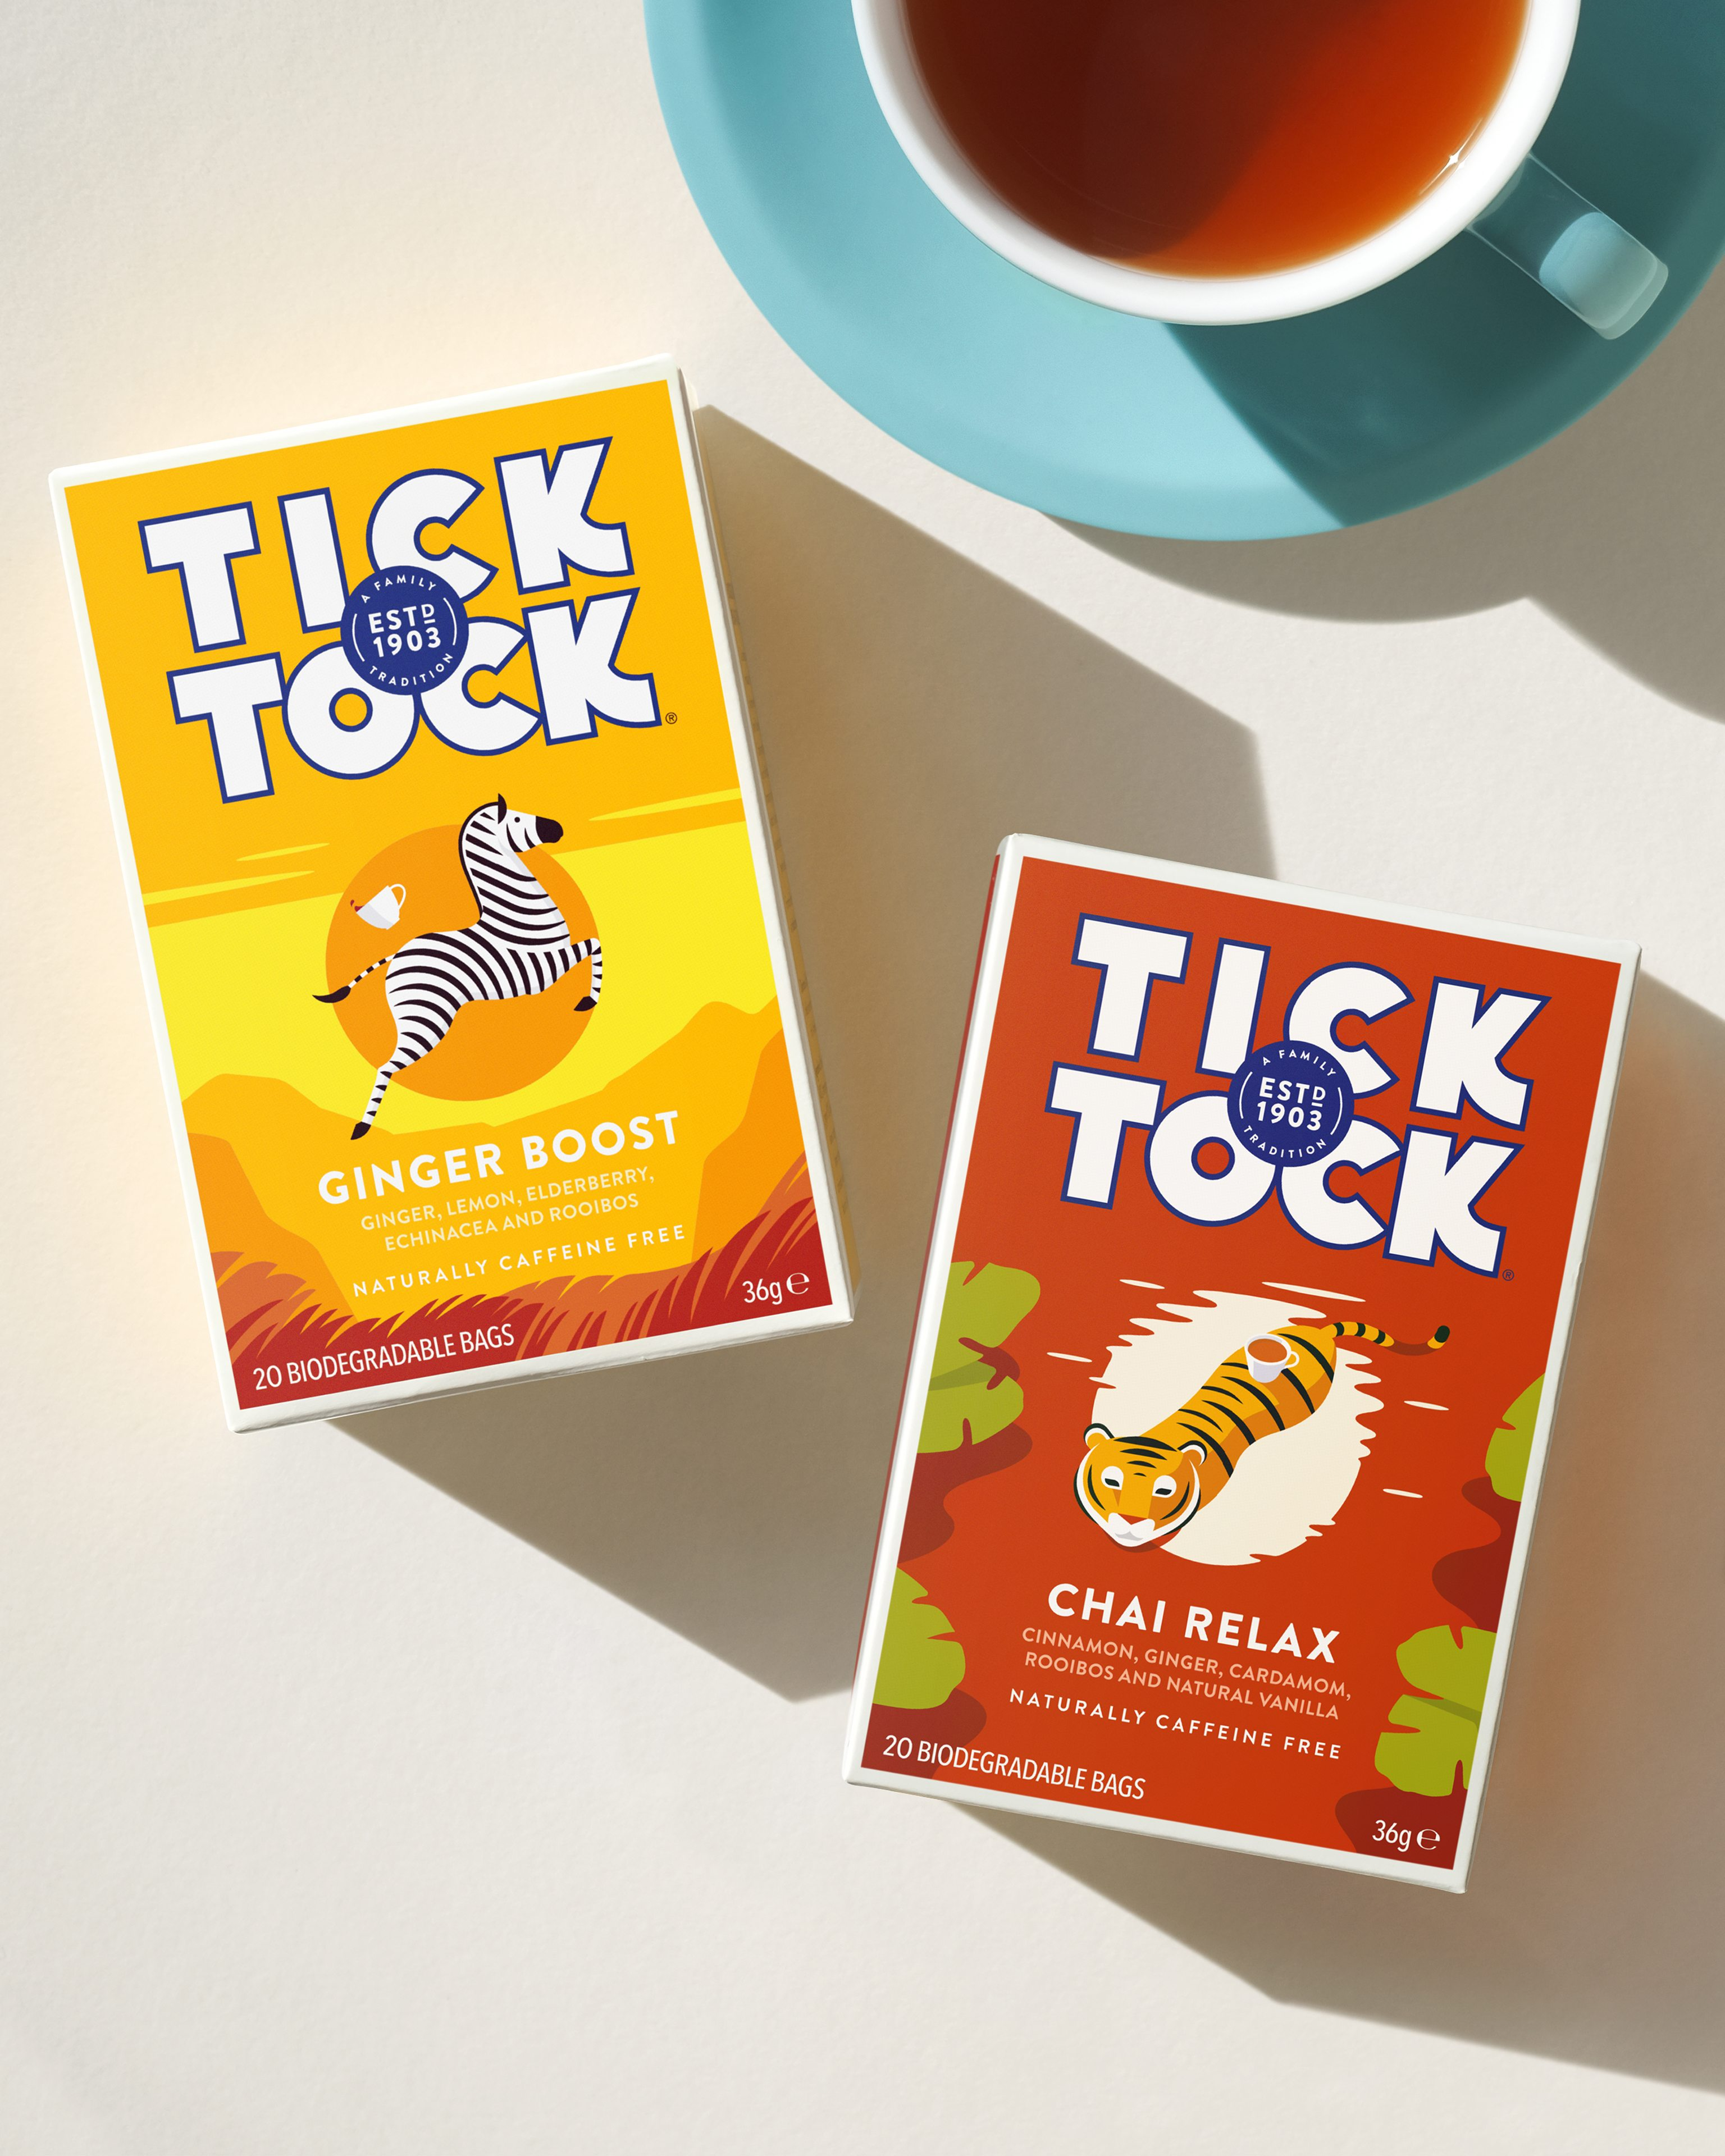 Adding Character and Joy with Tick Tock Wellbeing Tea